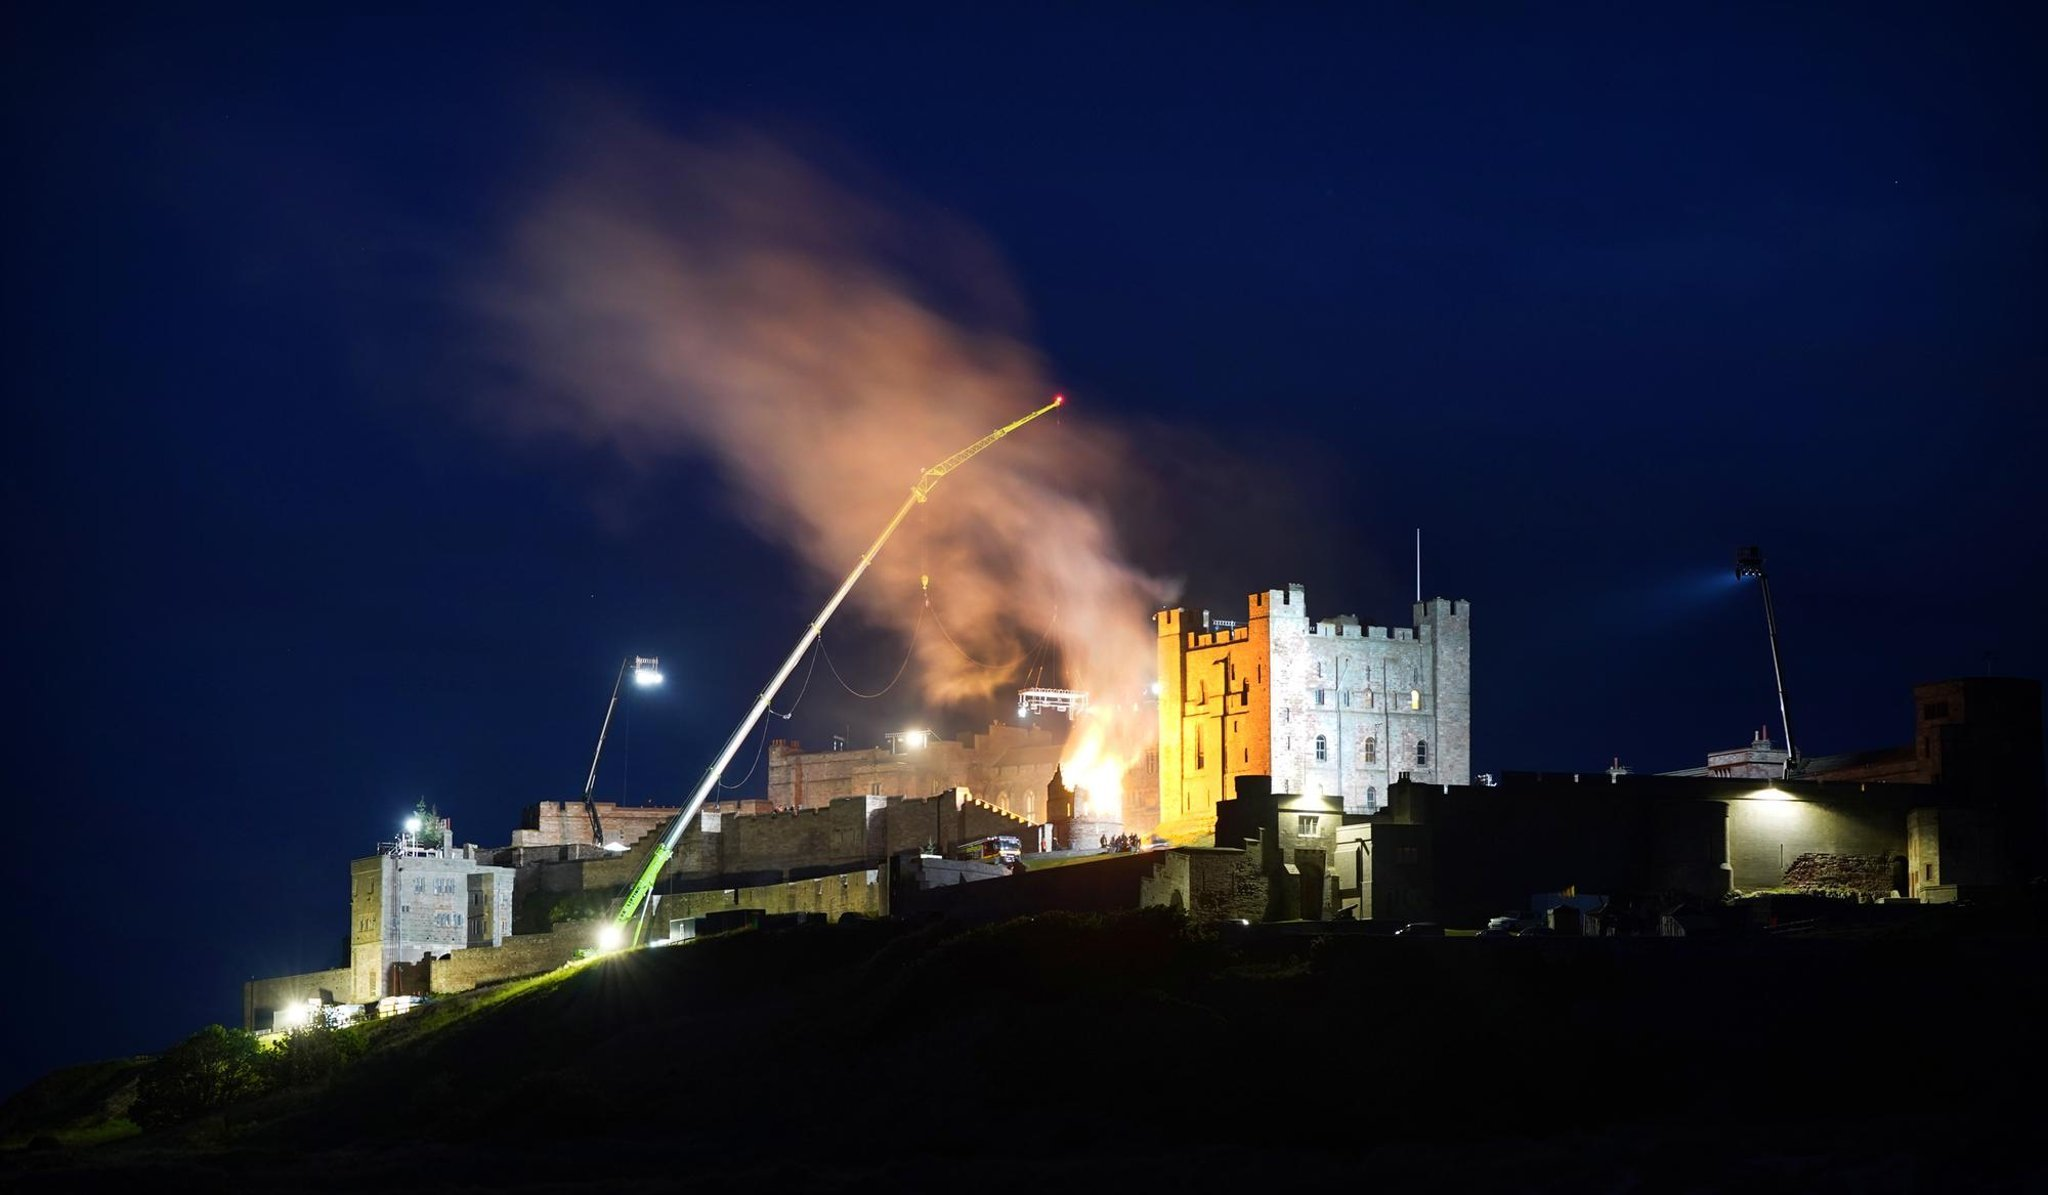 New Indiana Jones movie lights up the night sky at historic castle as filming continues